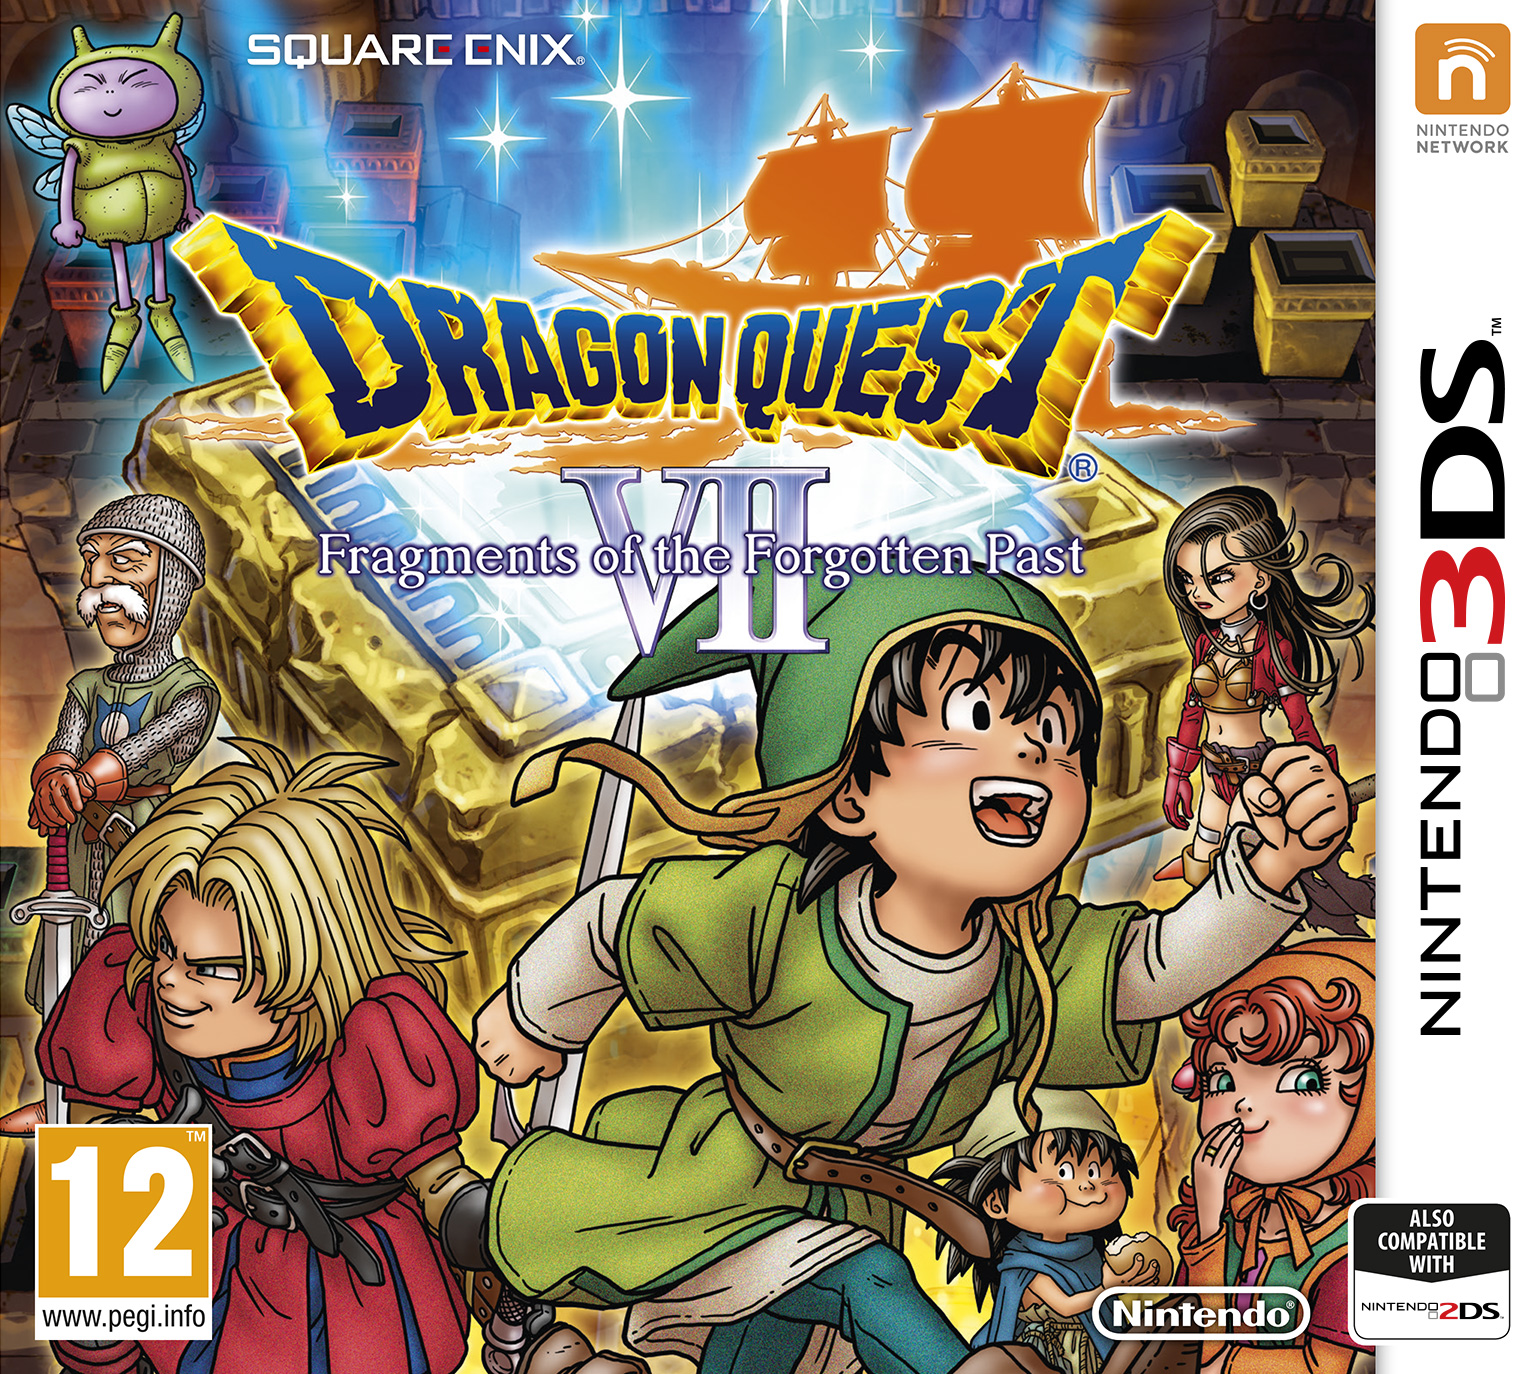 Dragon Quest 6 Ds Fliegender Teppich Dragon Quest Vii Fragments Of The Forgotten Past